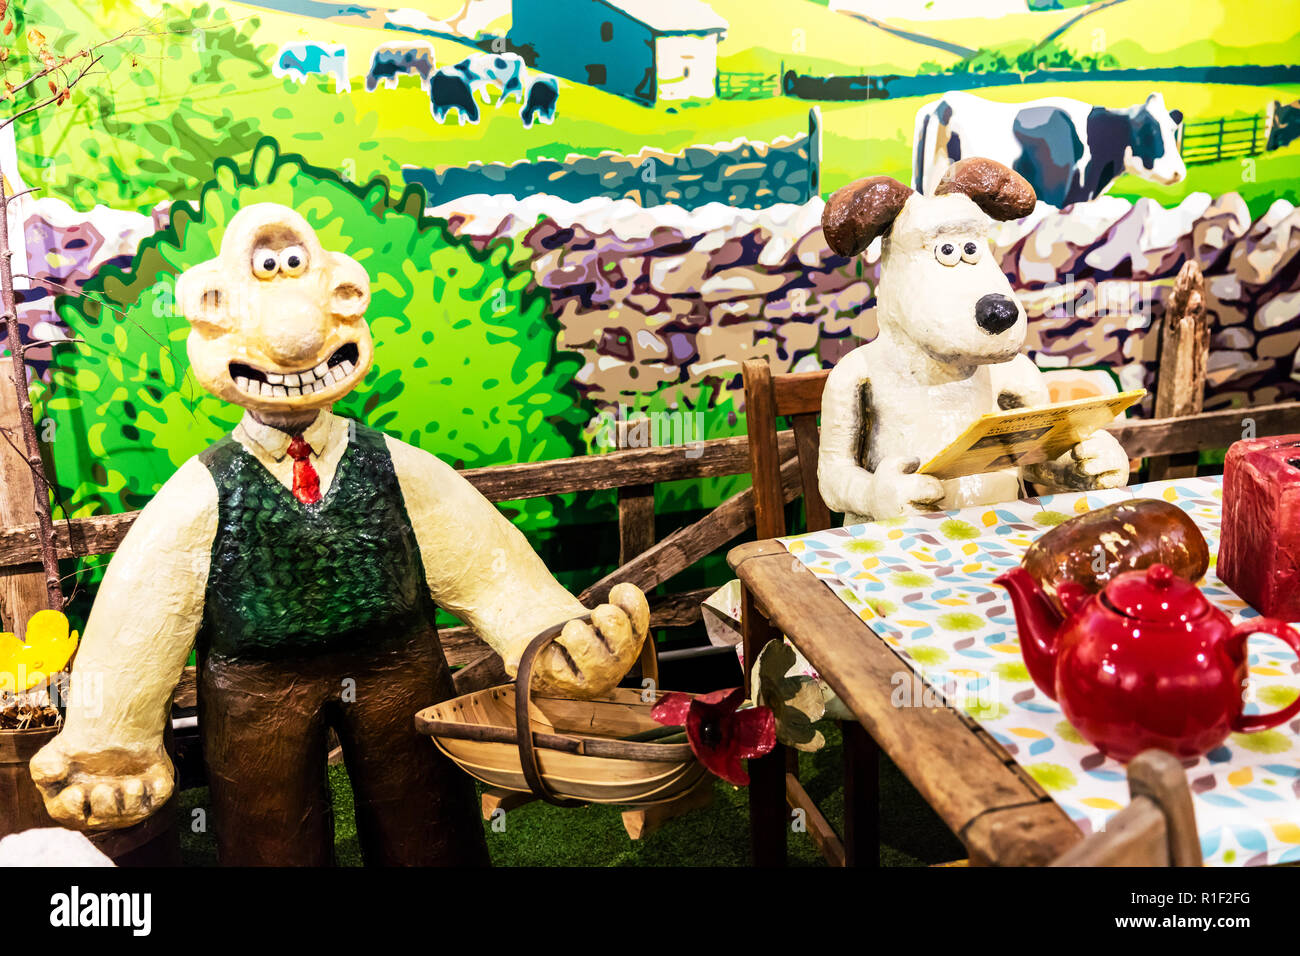 wallace & gromit, Wallace & Grommet, Grand Appeal and Aardman Animations, wallace and gromit characters, wallace and gromit Tv show, Wallace & gromit - Stock Image